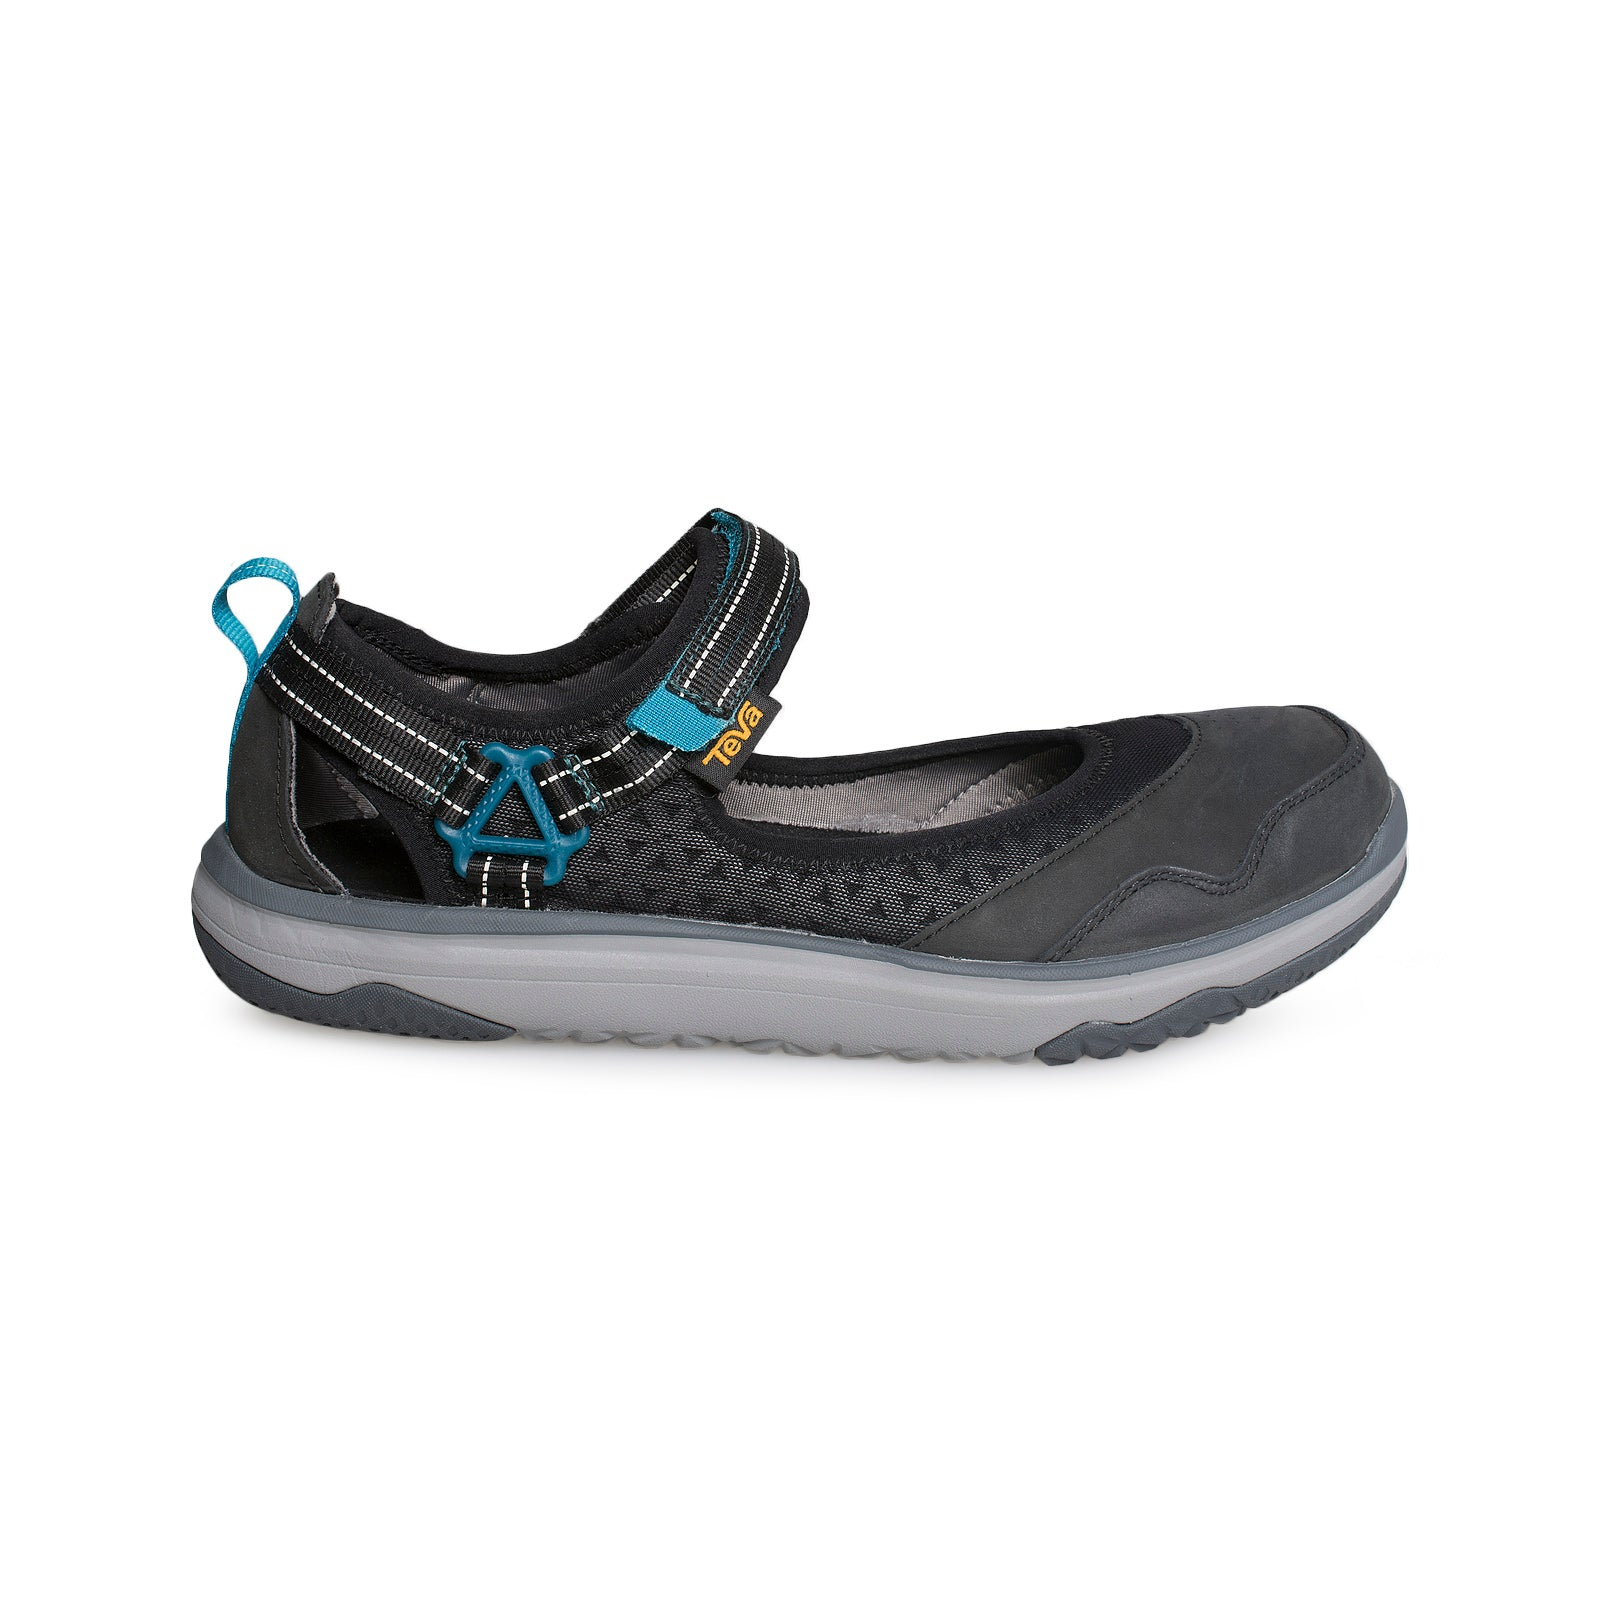 70798bf9b030 TEVA Terra Float Travel MJ Black Sandals - Women s - MyCozyBoots